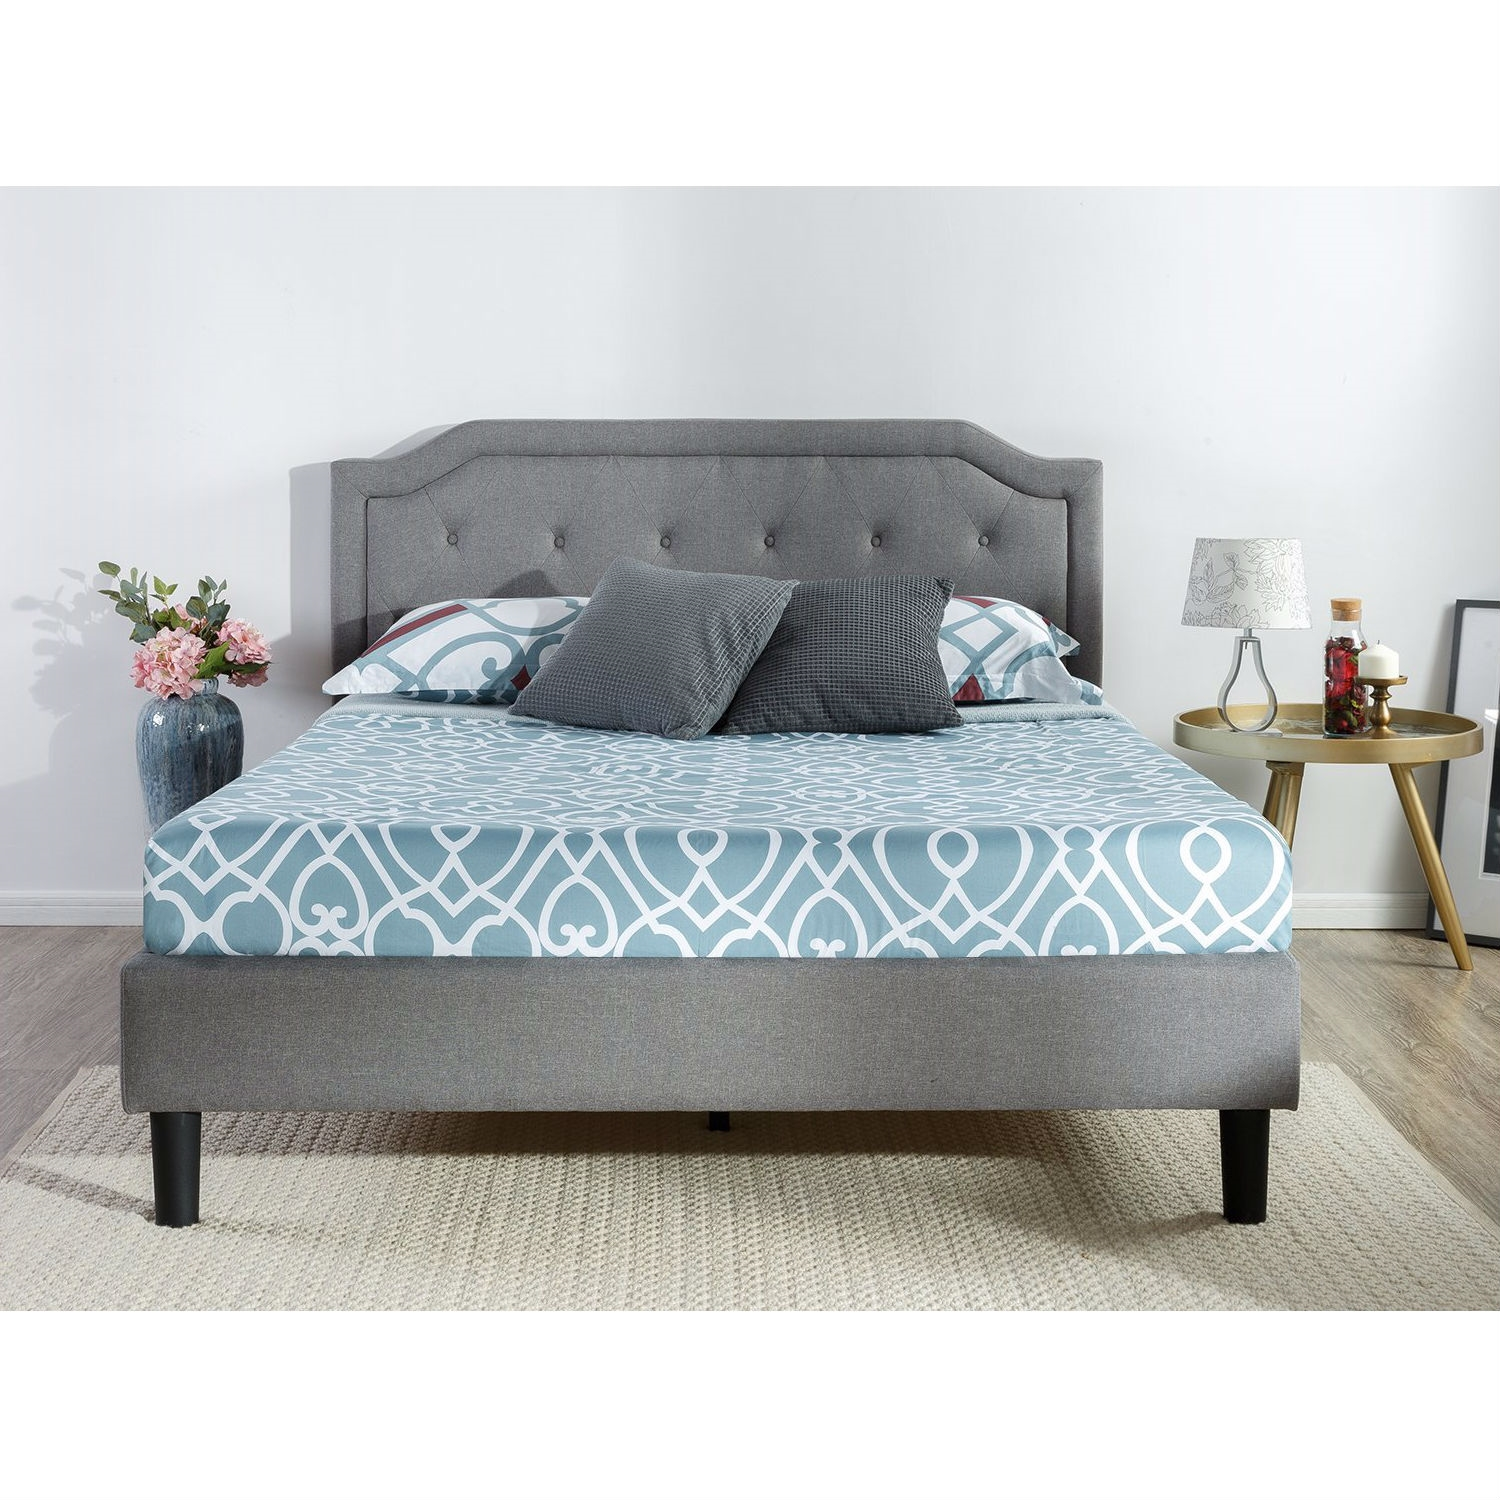 King Size Grey Upholstered Platform Bed With Clic On Tufted Headboard